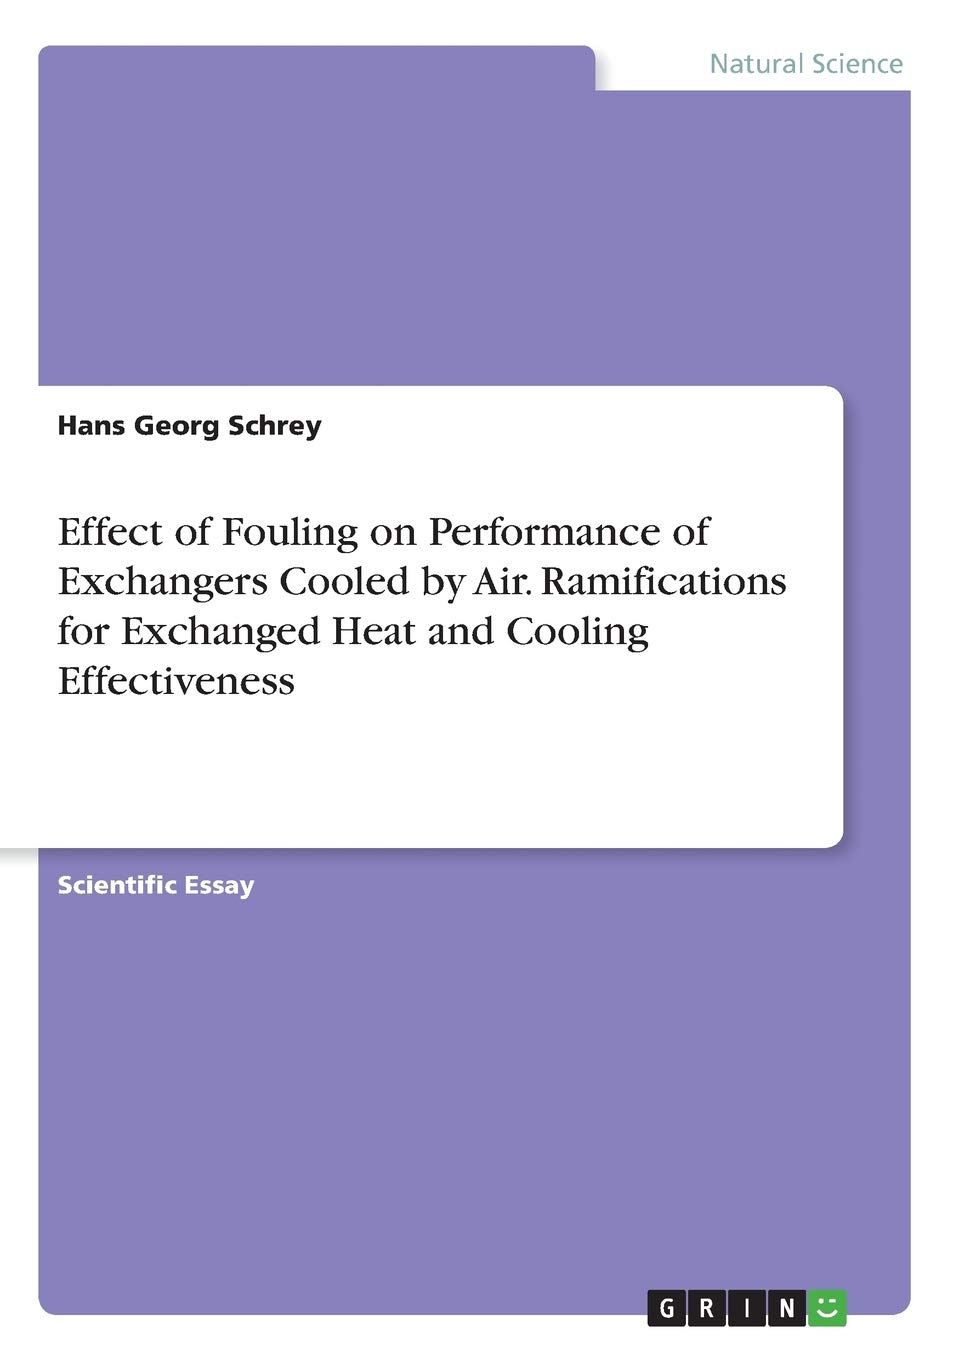 Effect of Fouling on Performance of Exchangers Cooled by Air